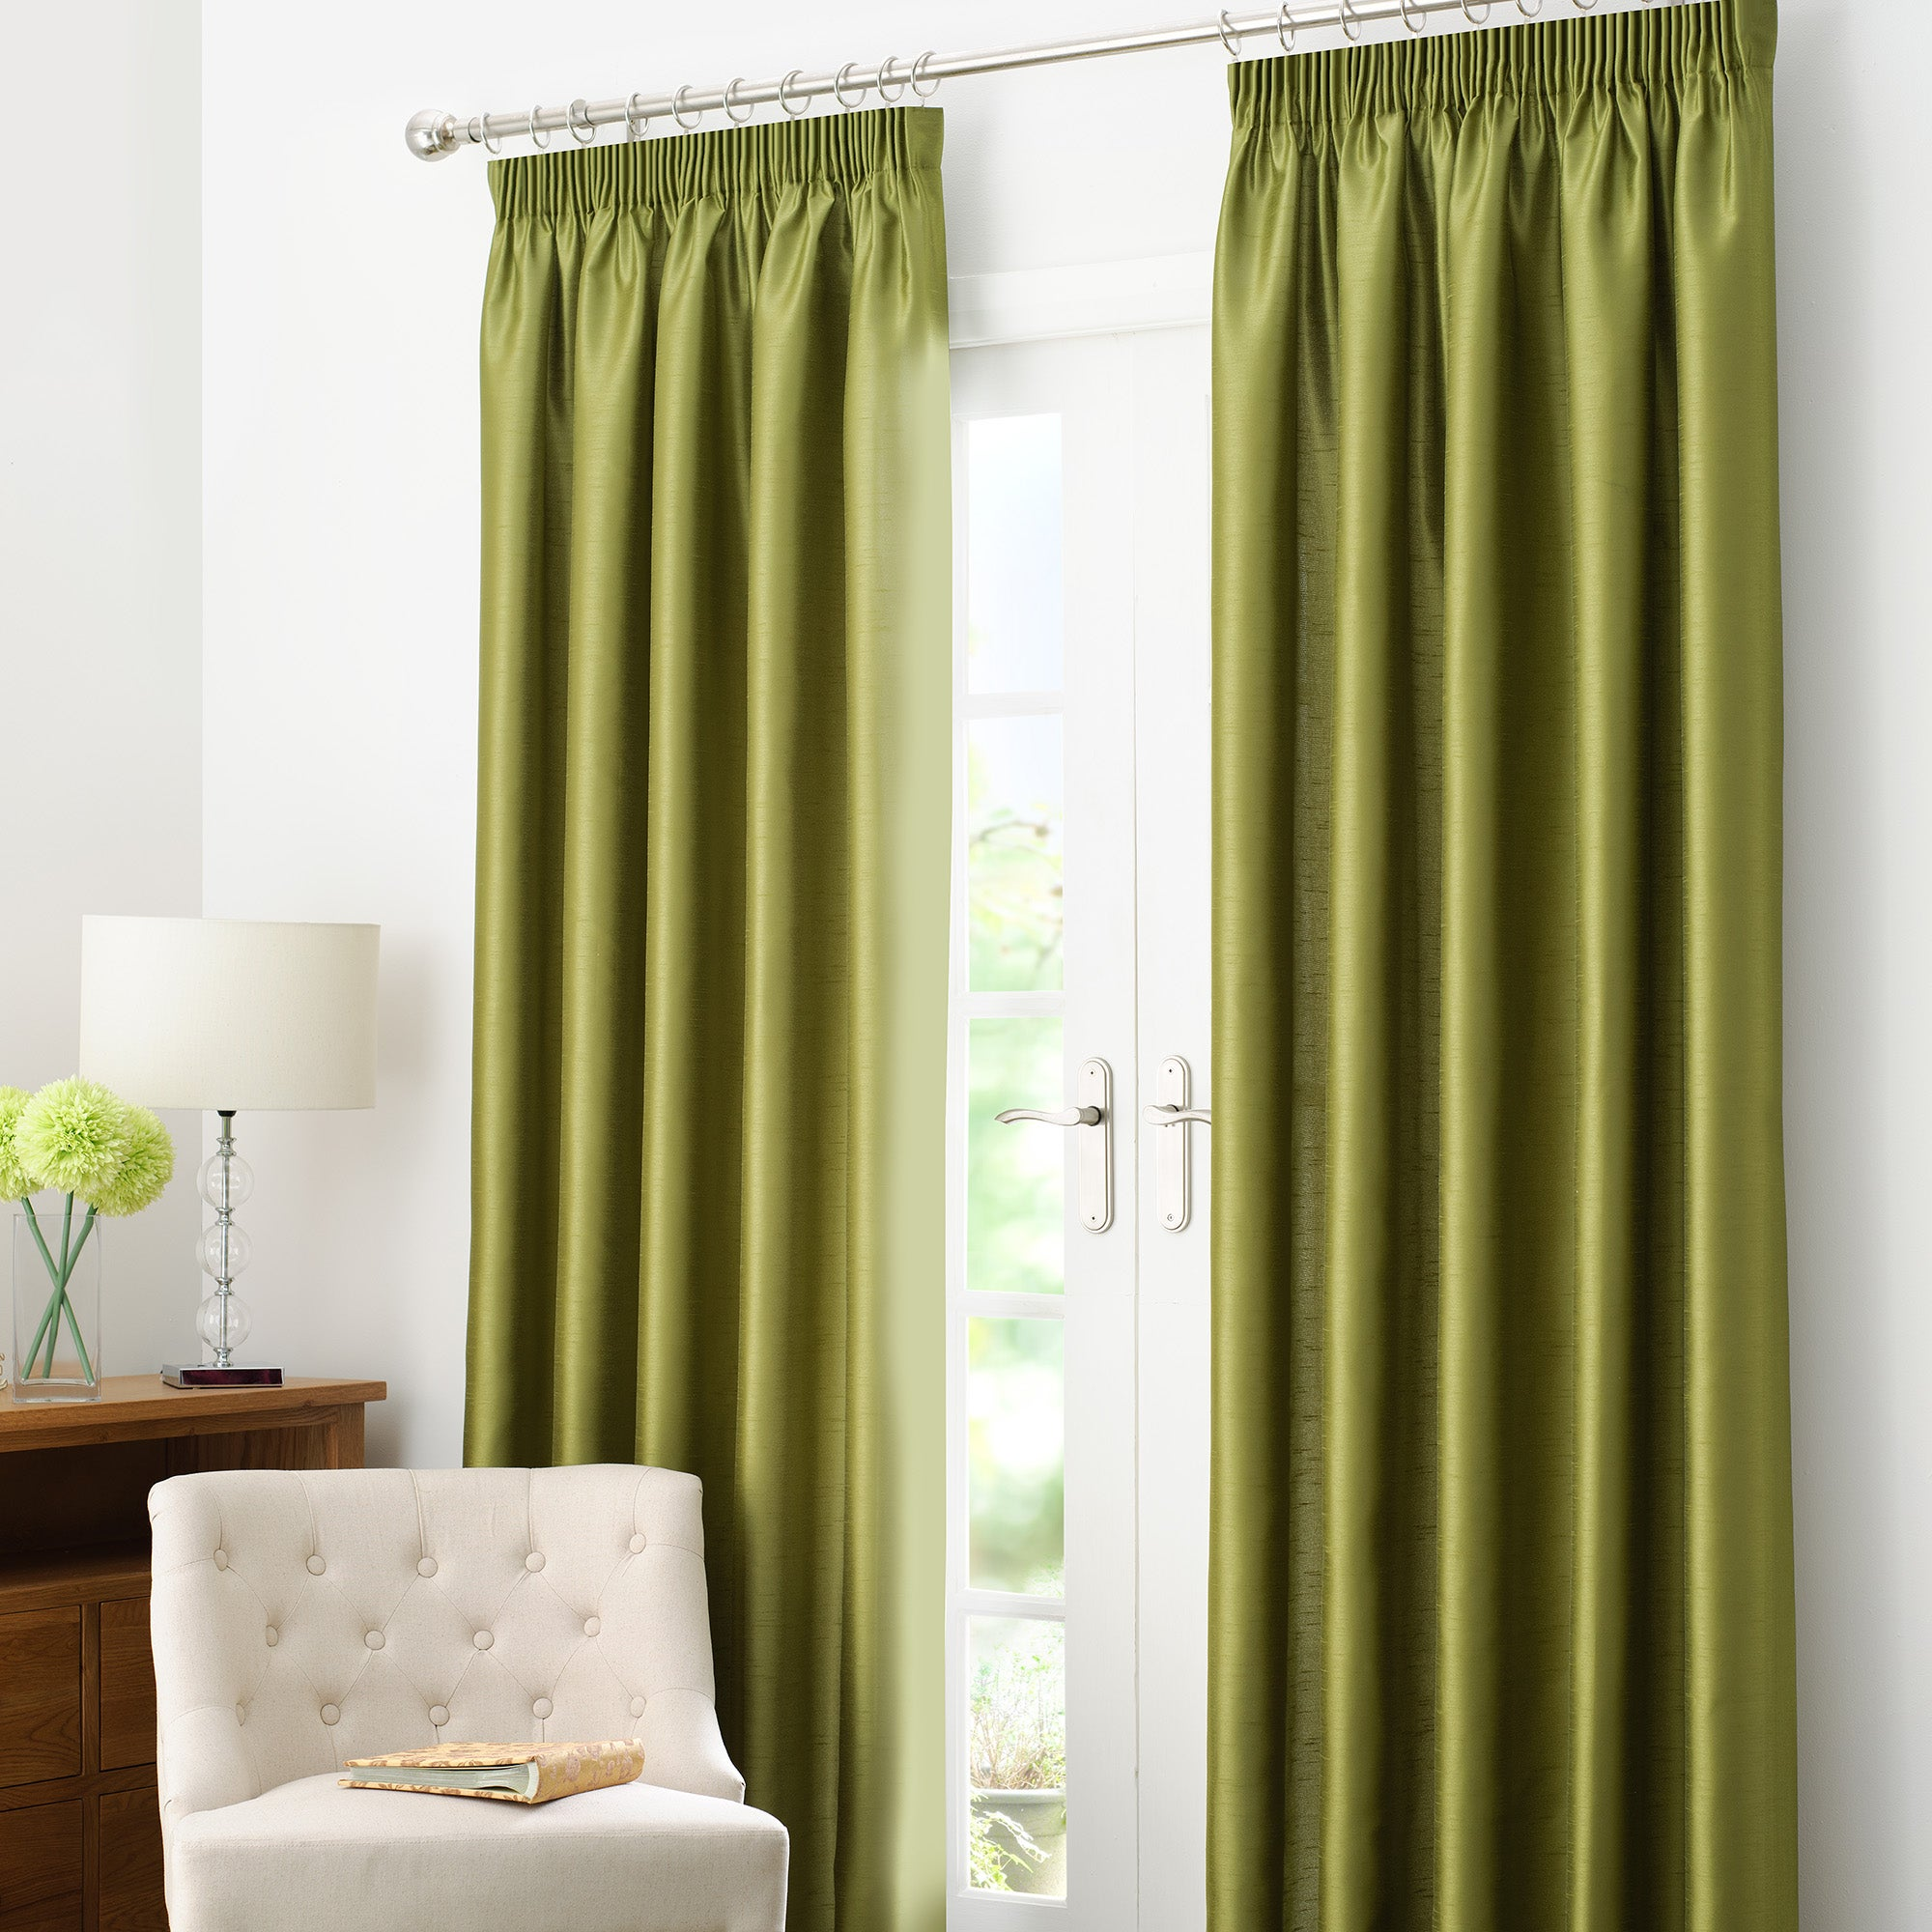 Green Dakota Lined Pencil Pleat Curtains